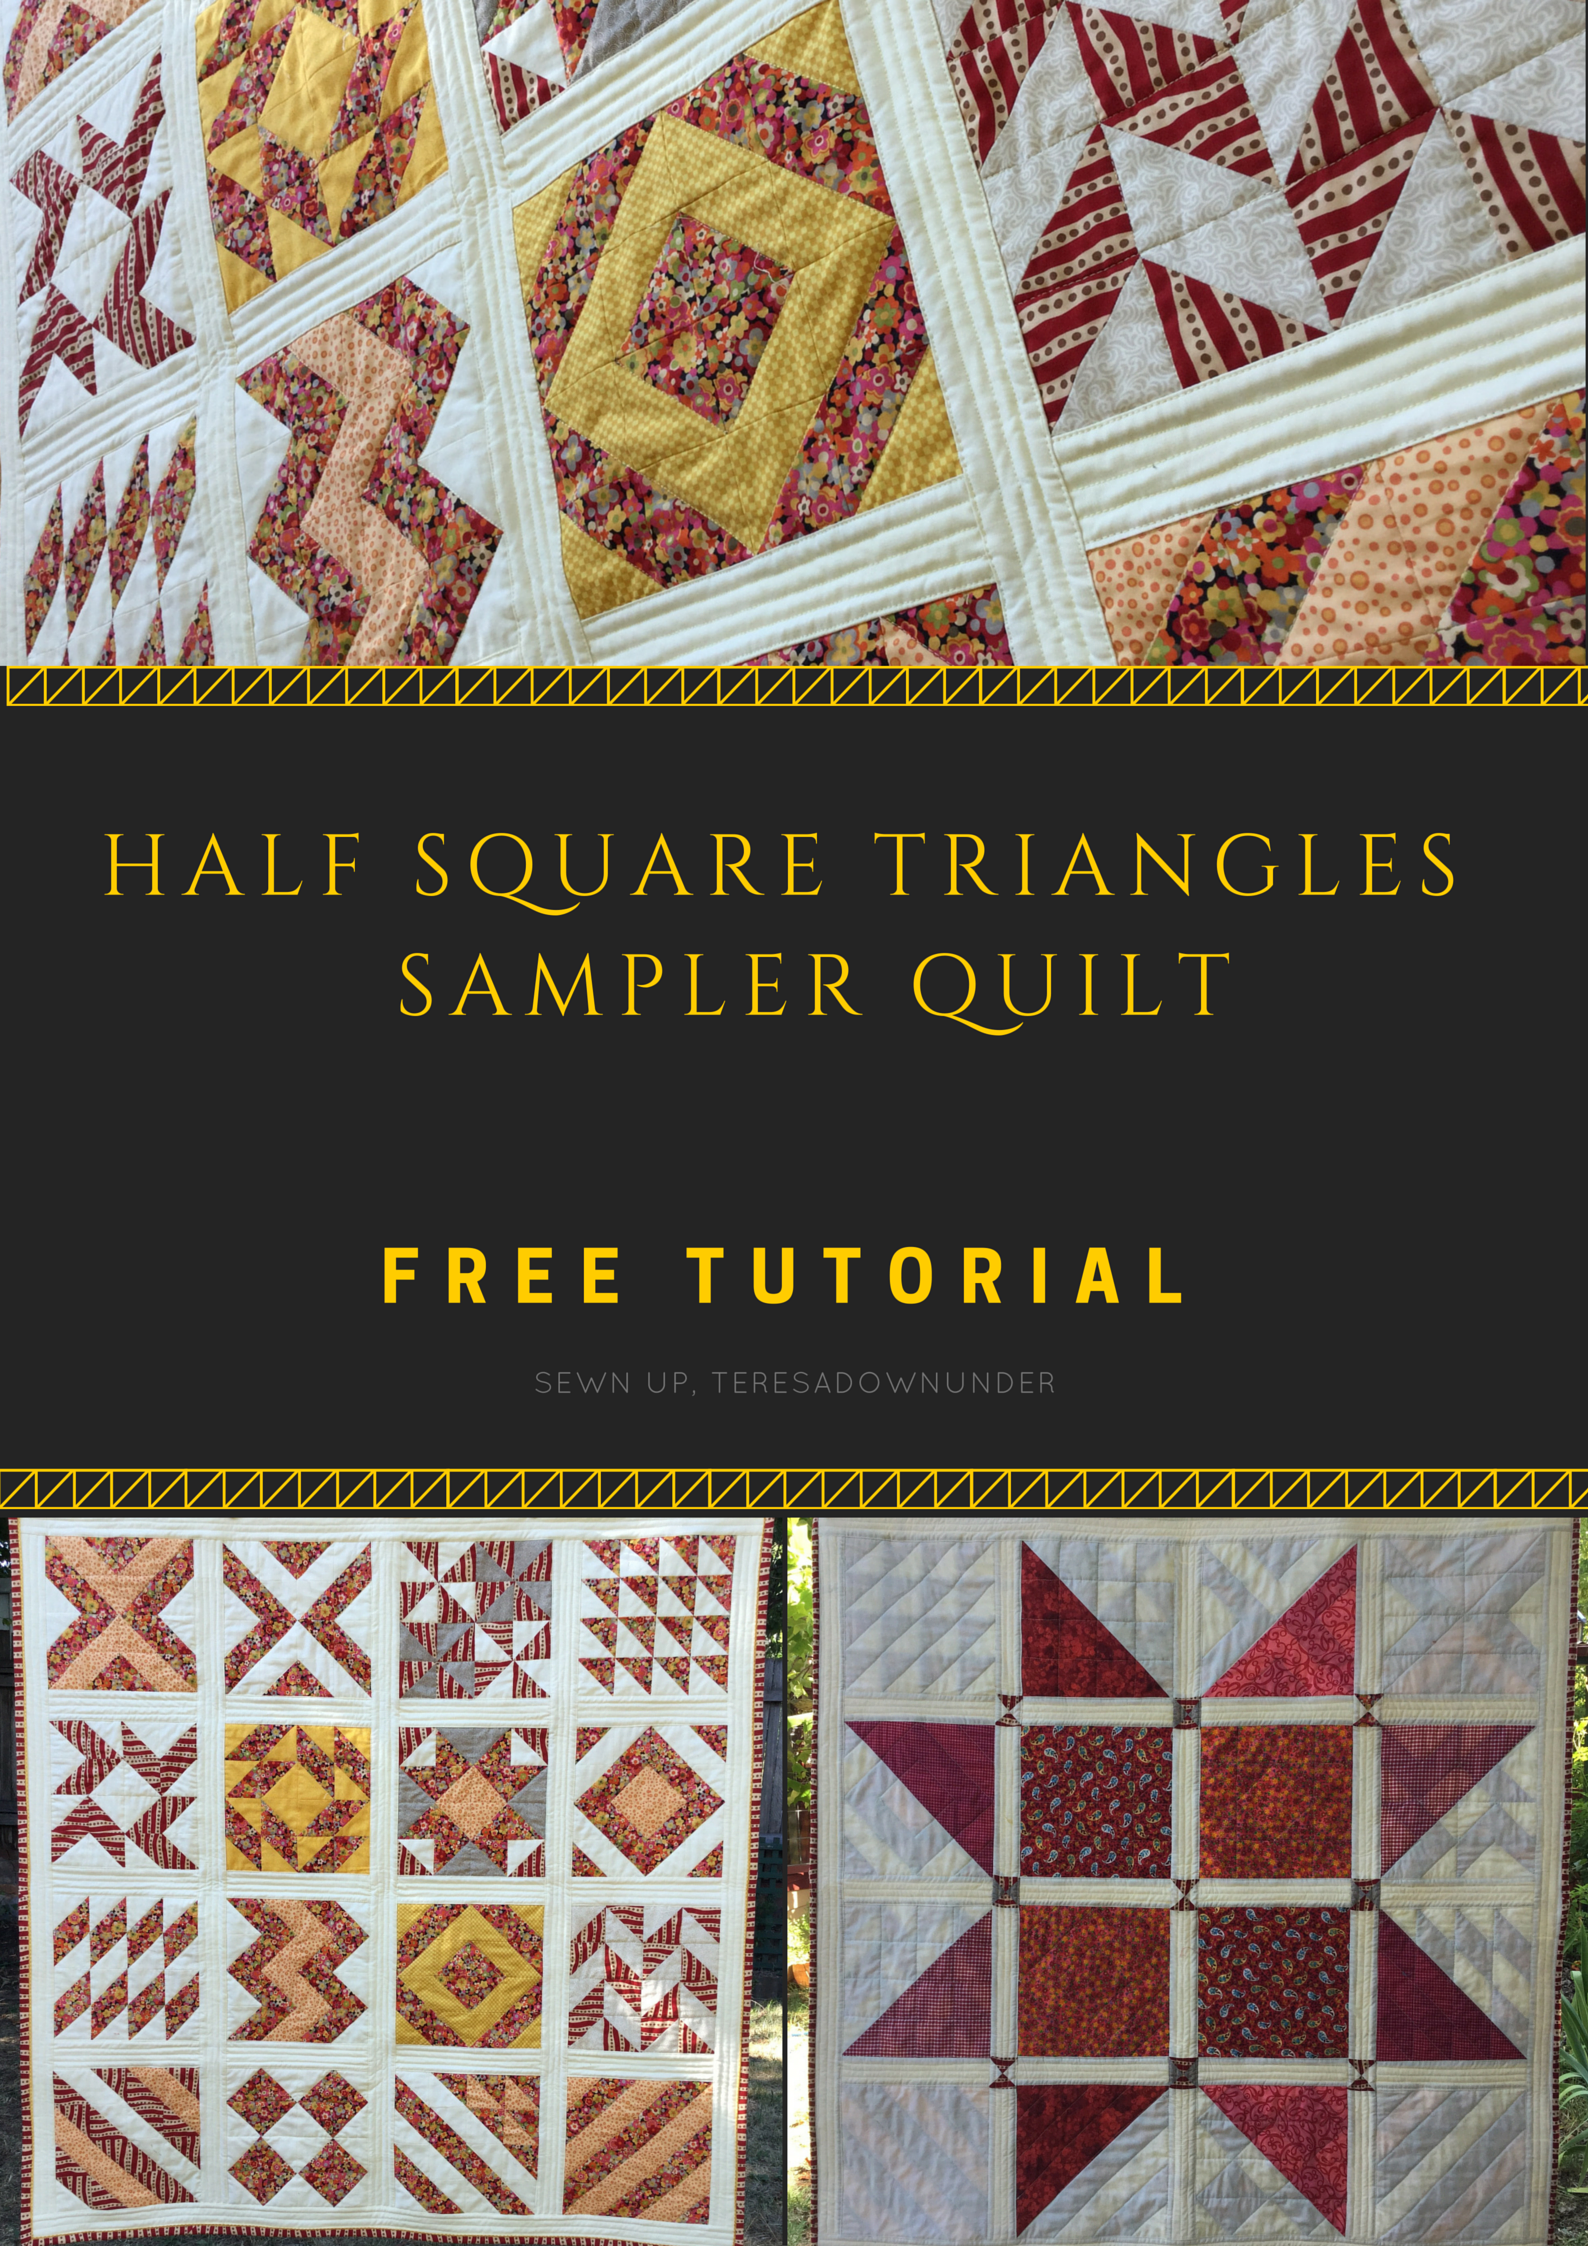 16 Half Square Triangles (HST) sampler quilt – free pattern   Half ... : quilting triangles tips - Adamdwight.com